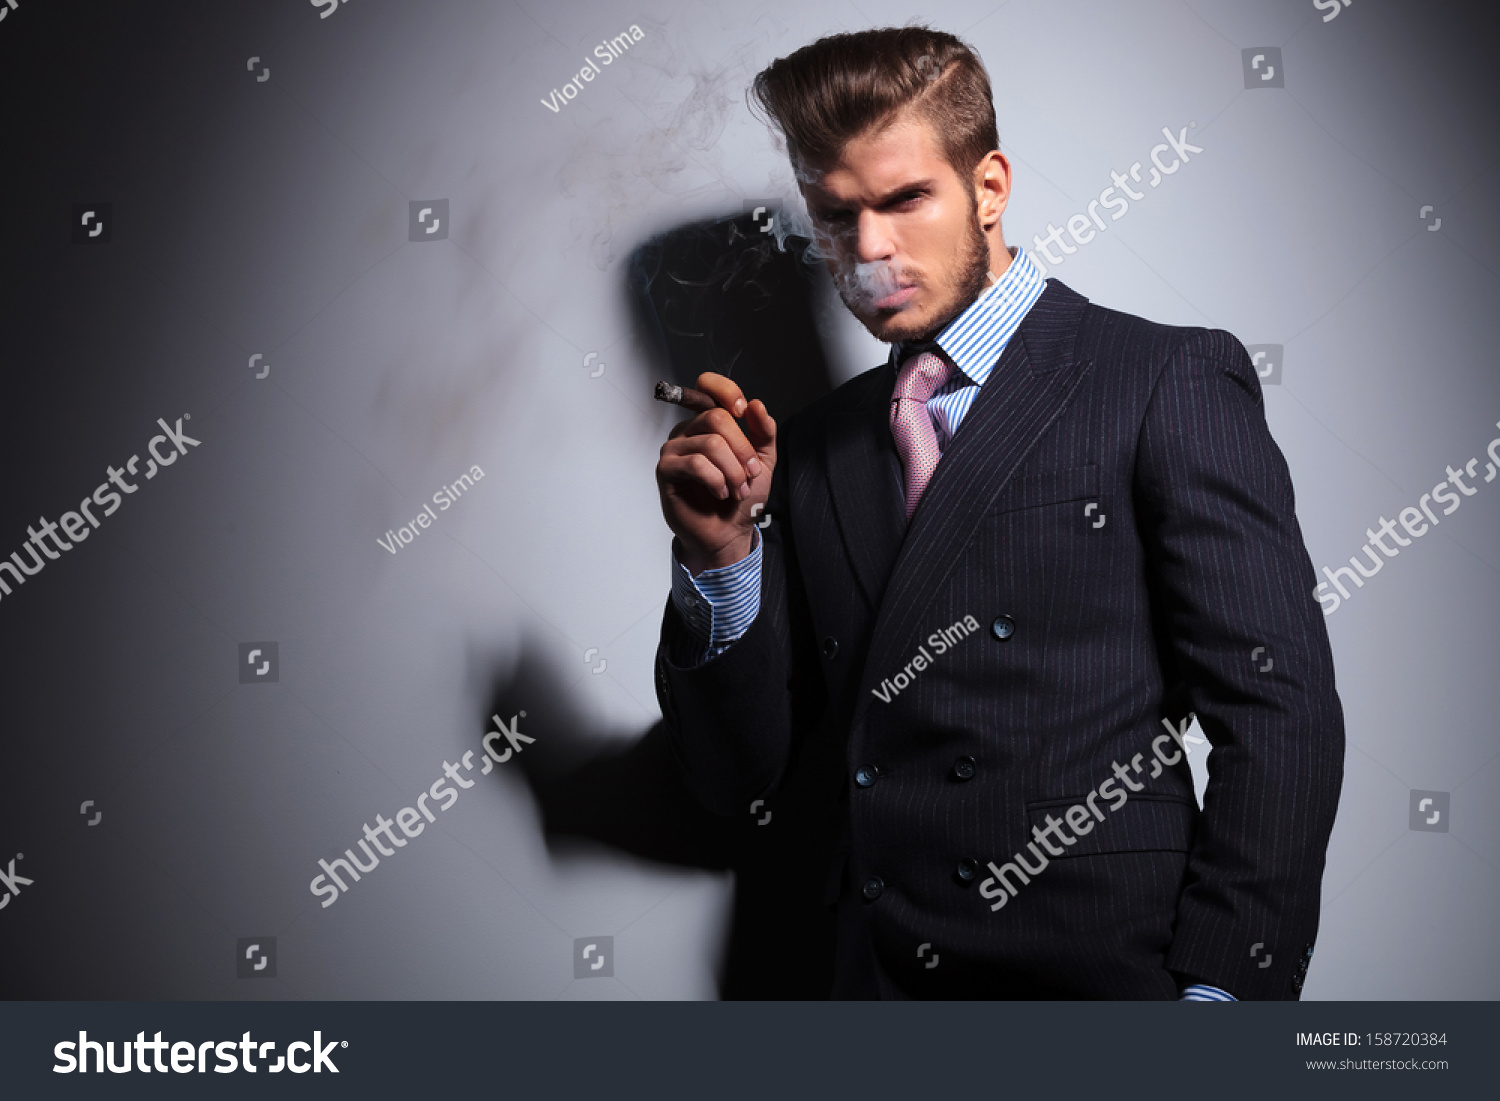 Serious Business Man Smoking His Cigar Stock Photo